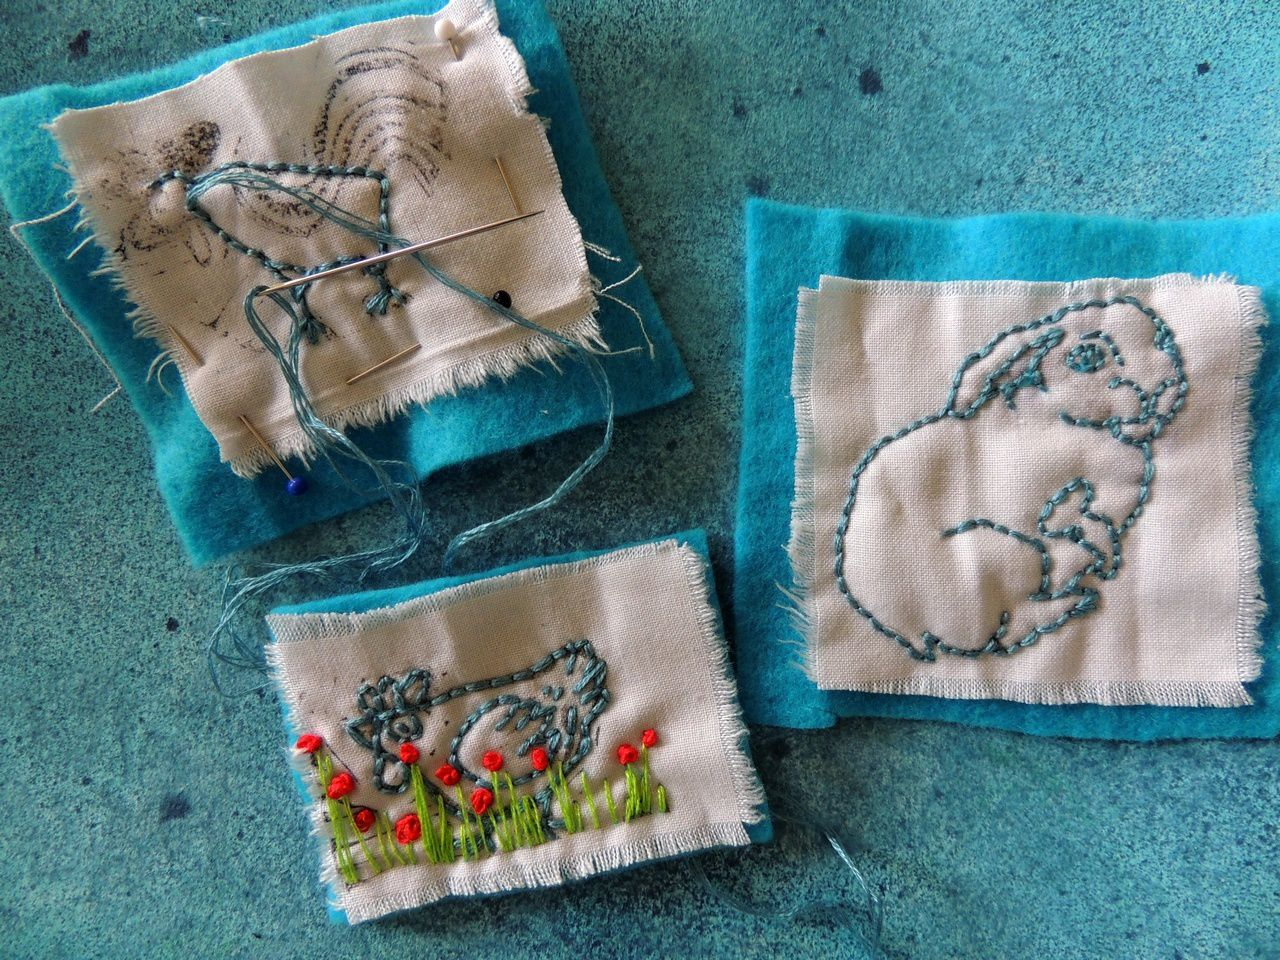 broderie 'on the go'